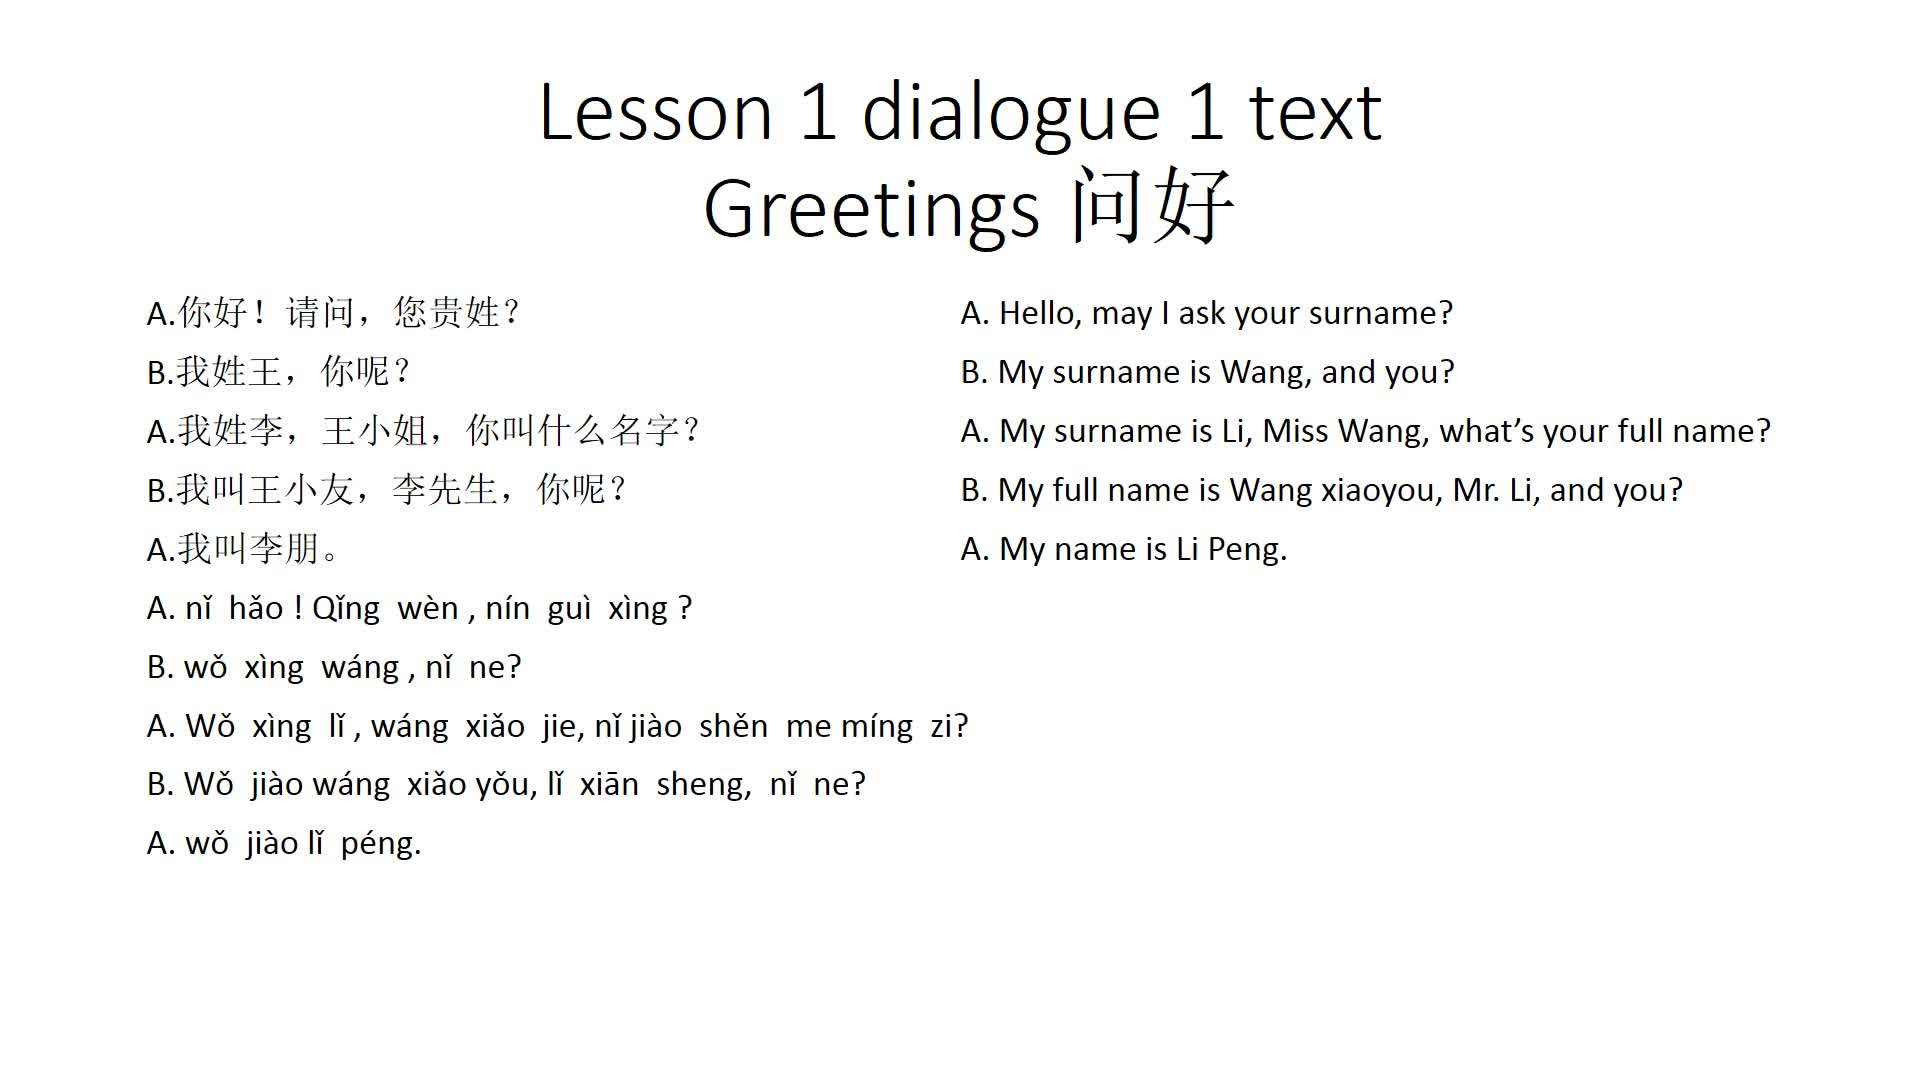 Mandarin chinese lesson 1 dialogue 1 greetings hong zeng skillshare m4hsunfo